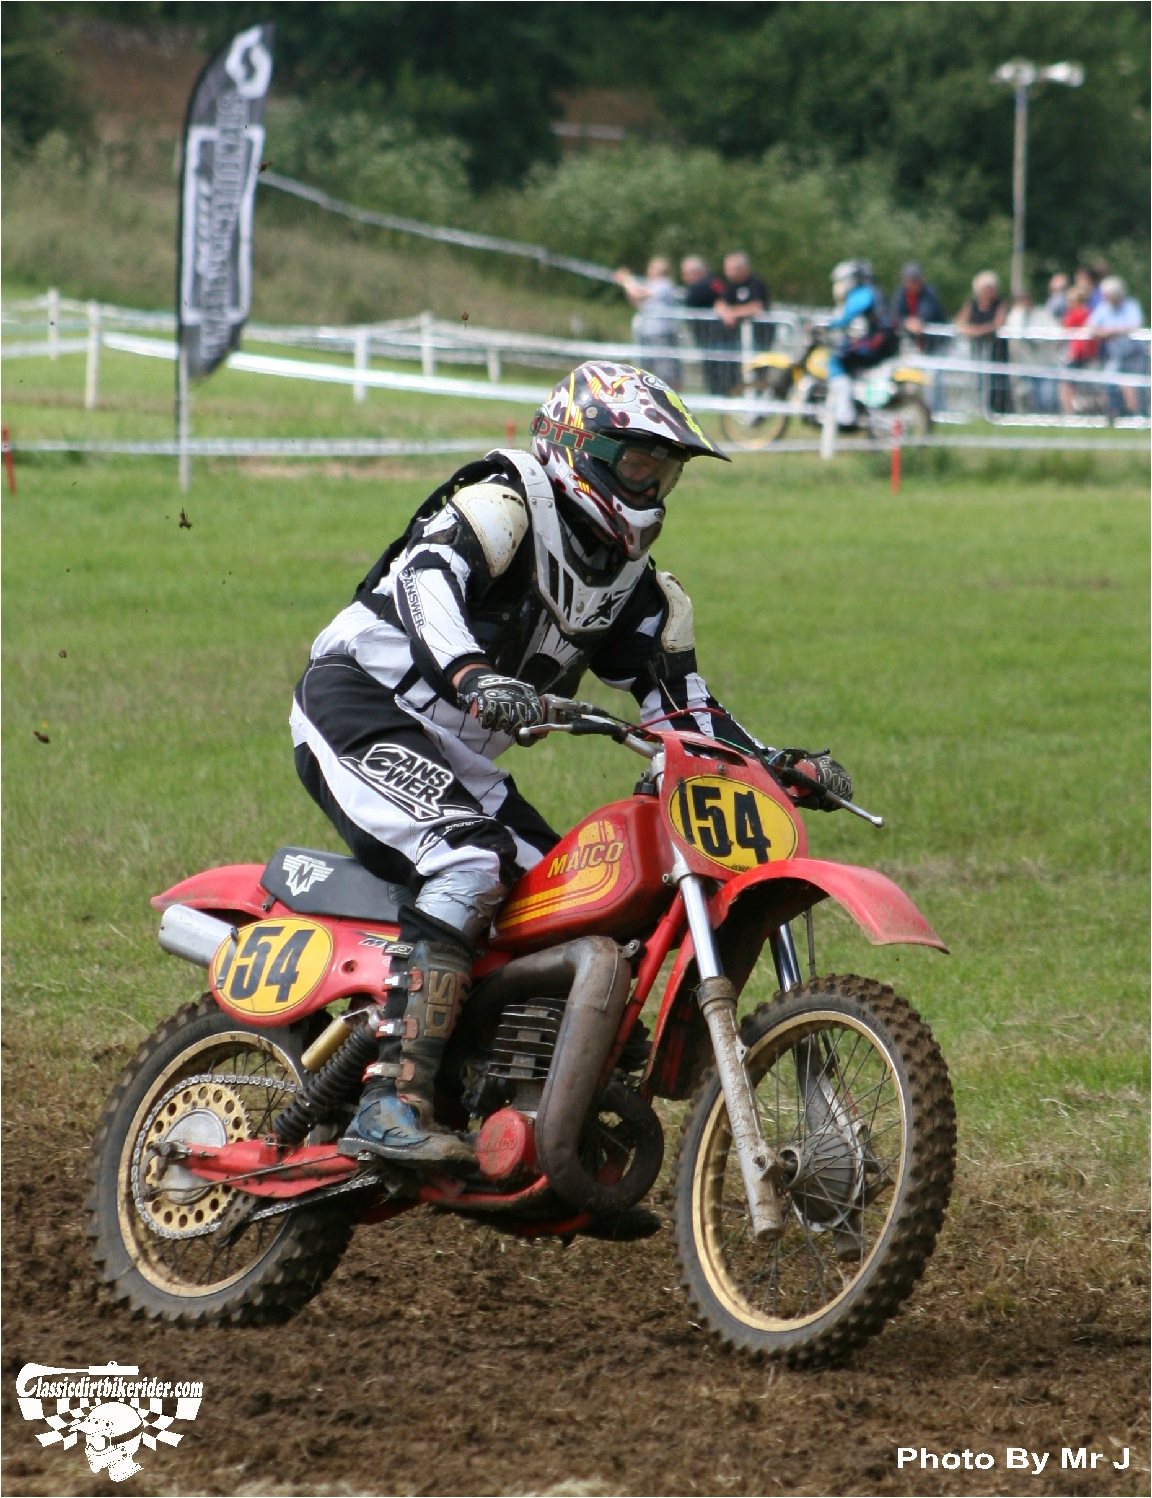 king of the castle 2015 photos Farleigh Castle twinshock motocross classicdirtbikerider.com 94